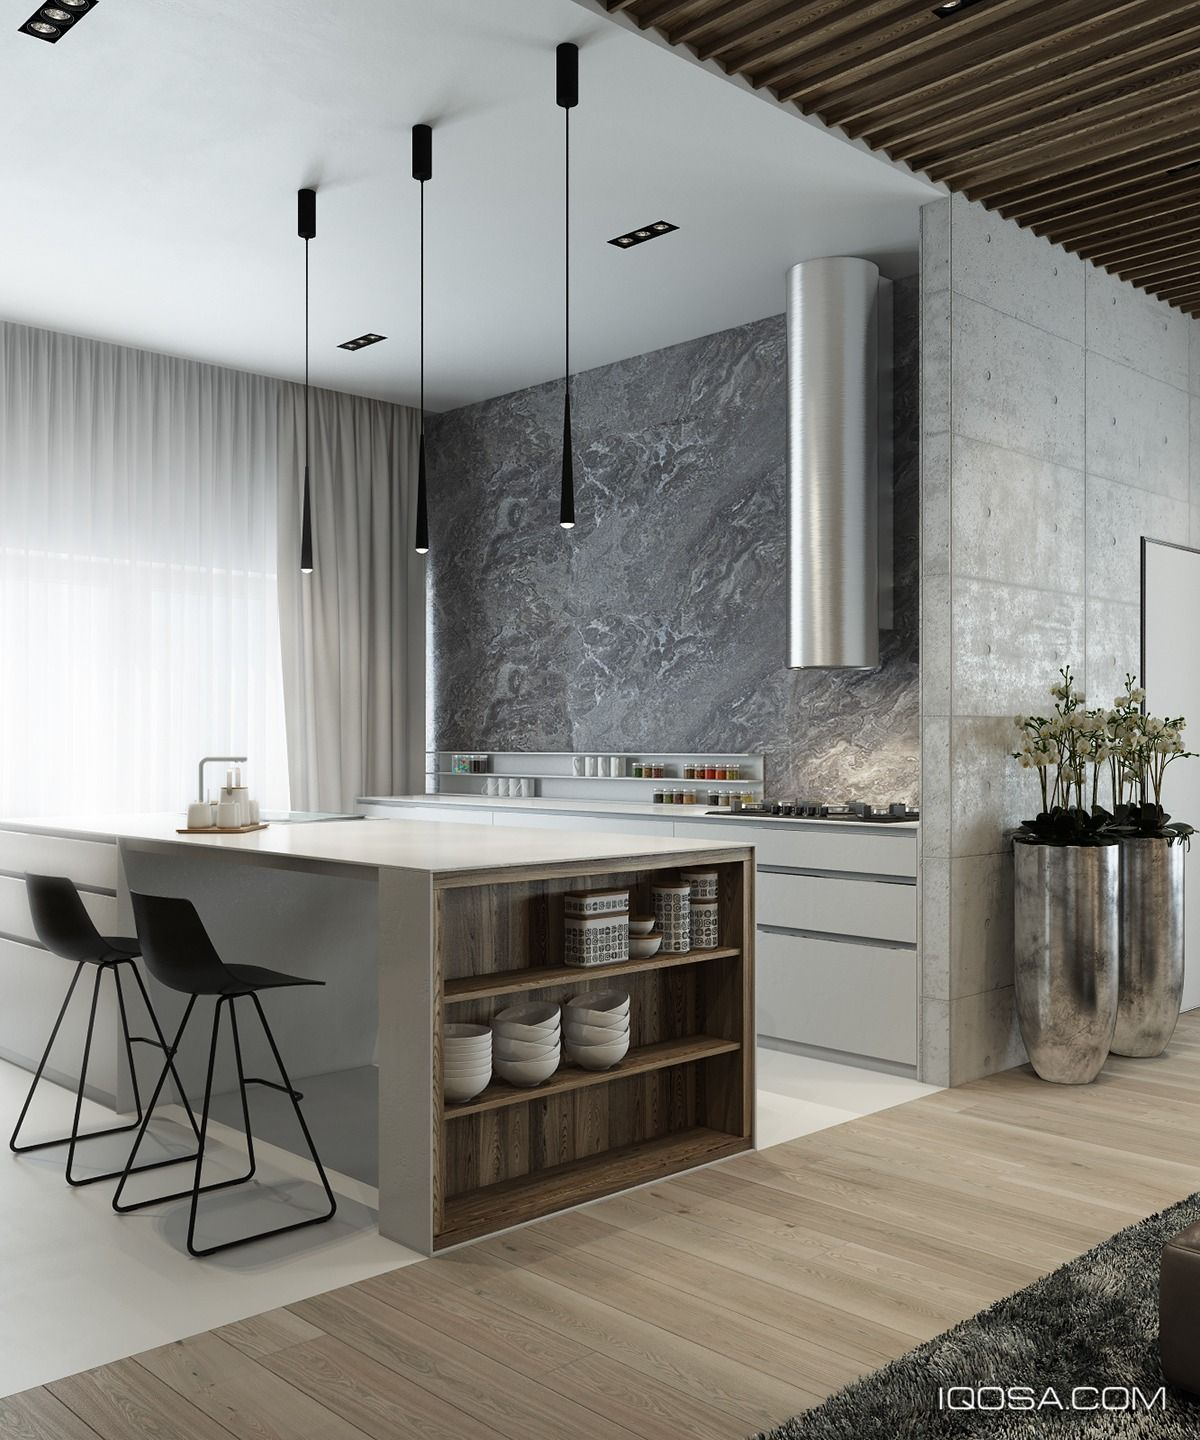 Sharp contrast defines the kitchen color form and materials